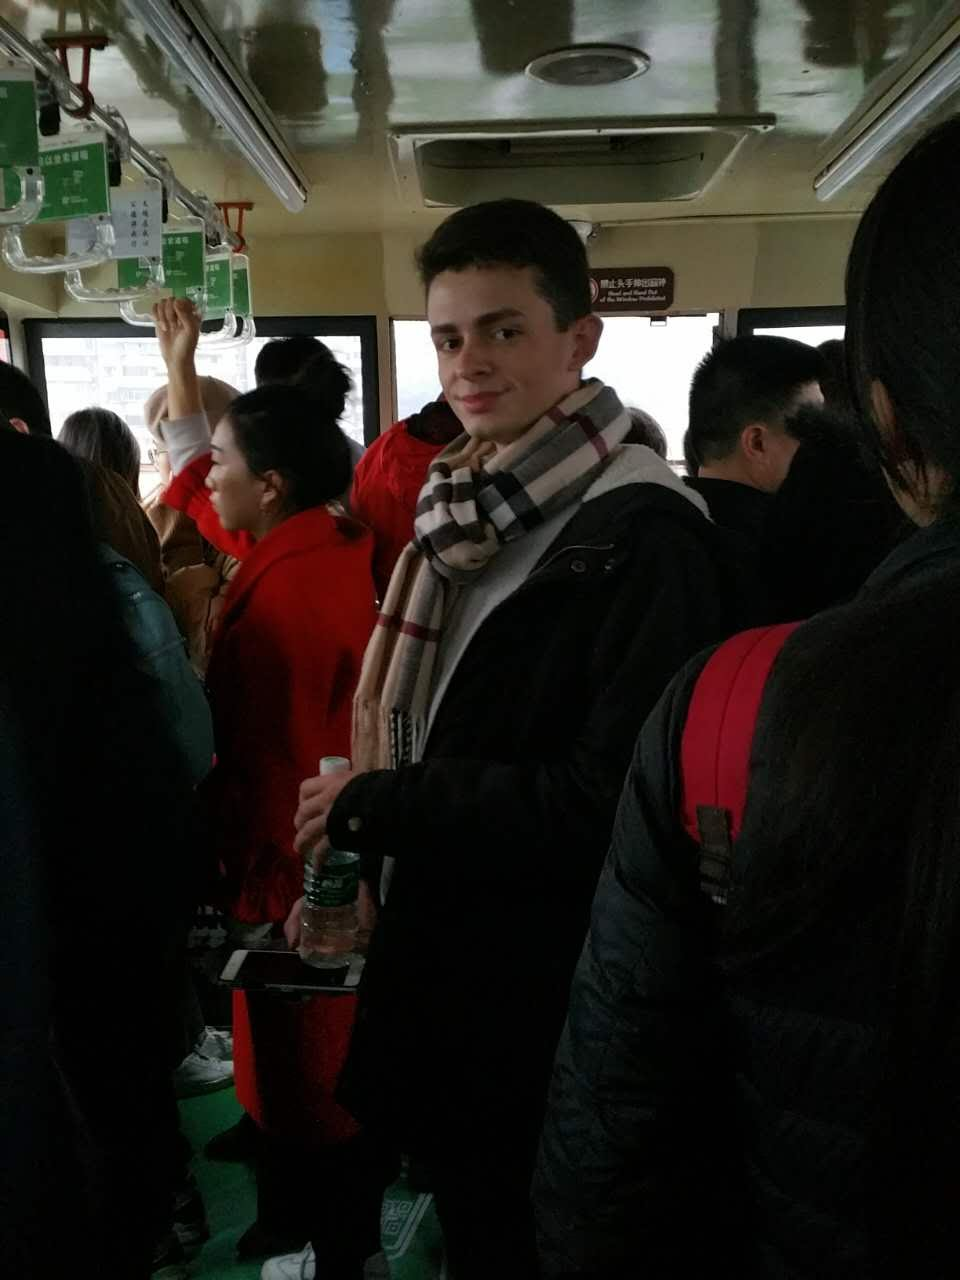 I'm on a cable car going over a river in Chongqing!